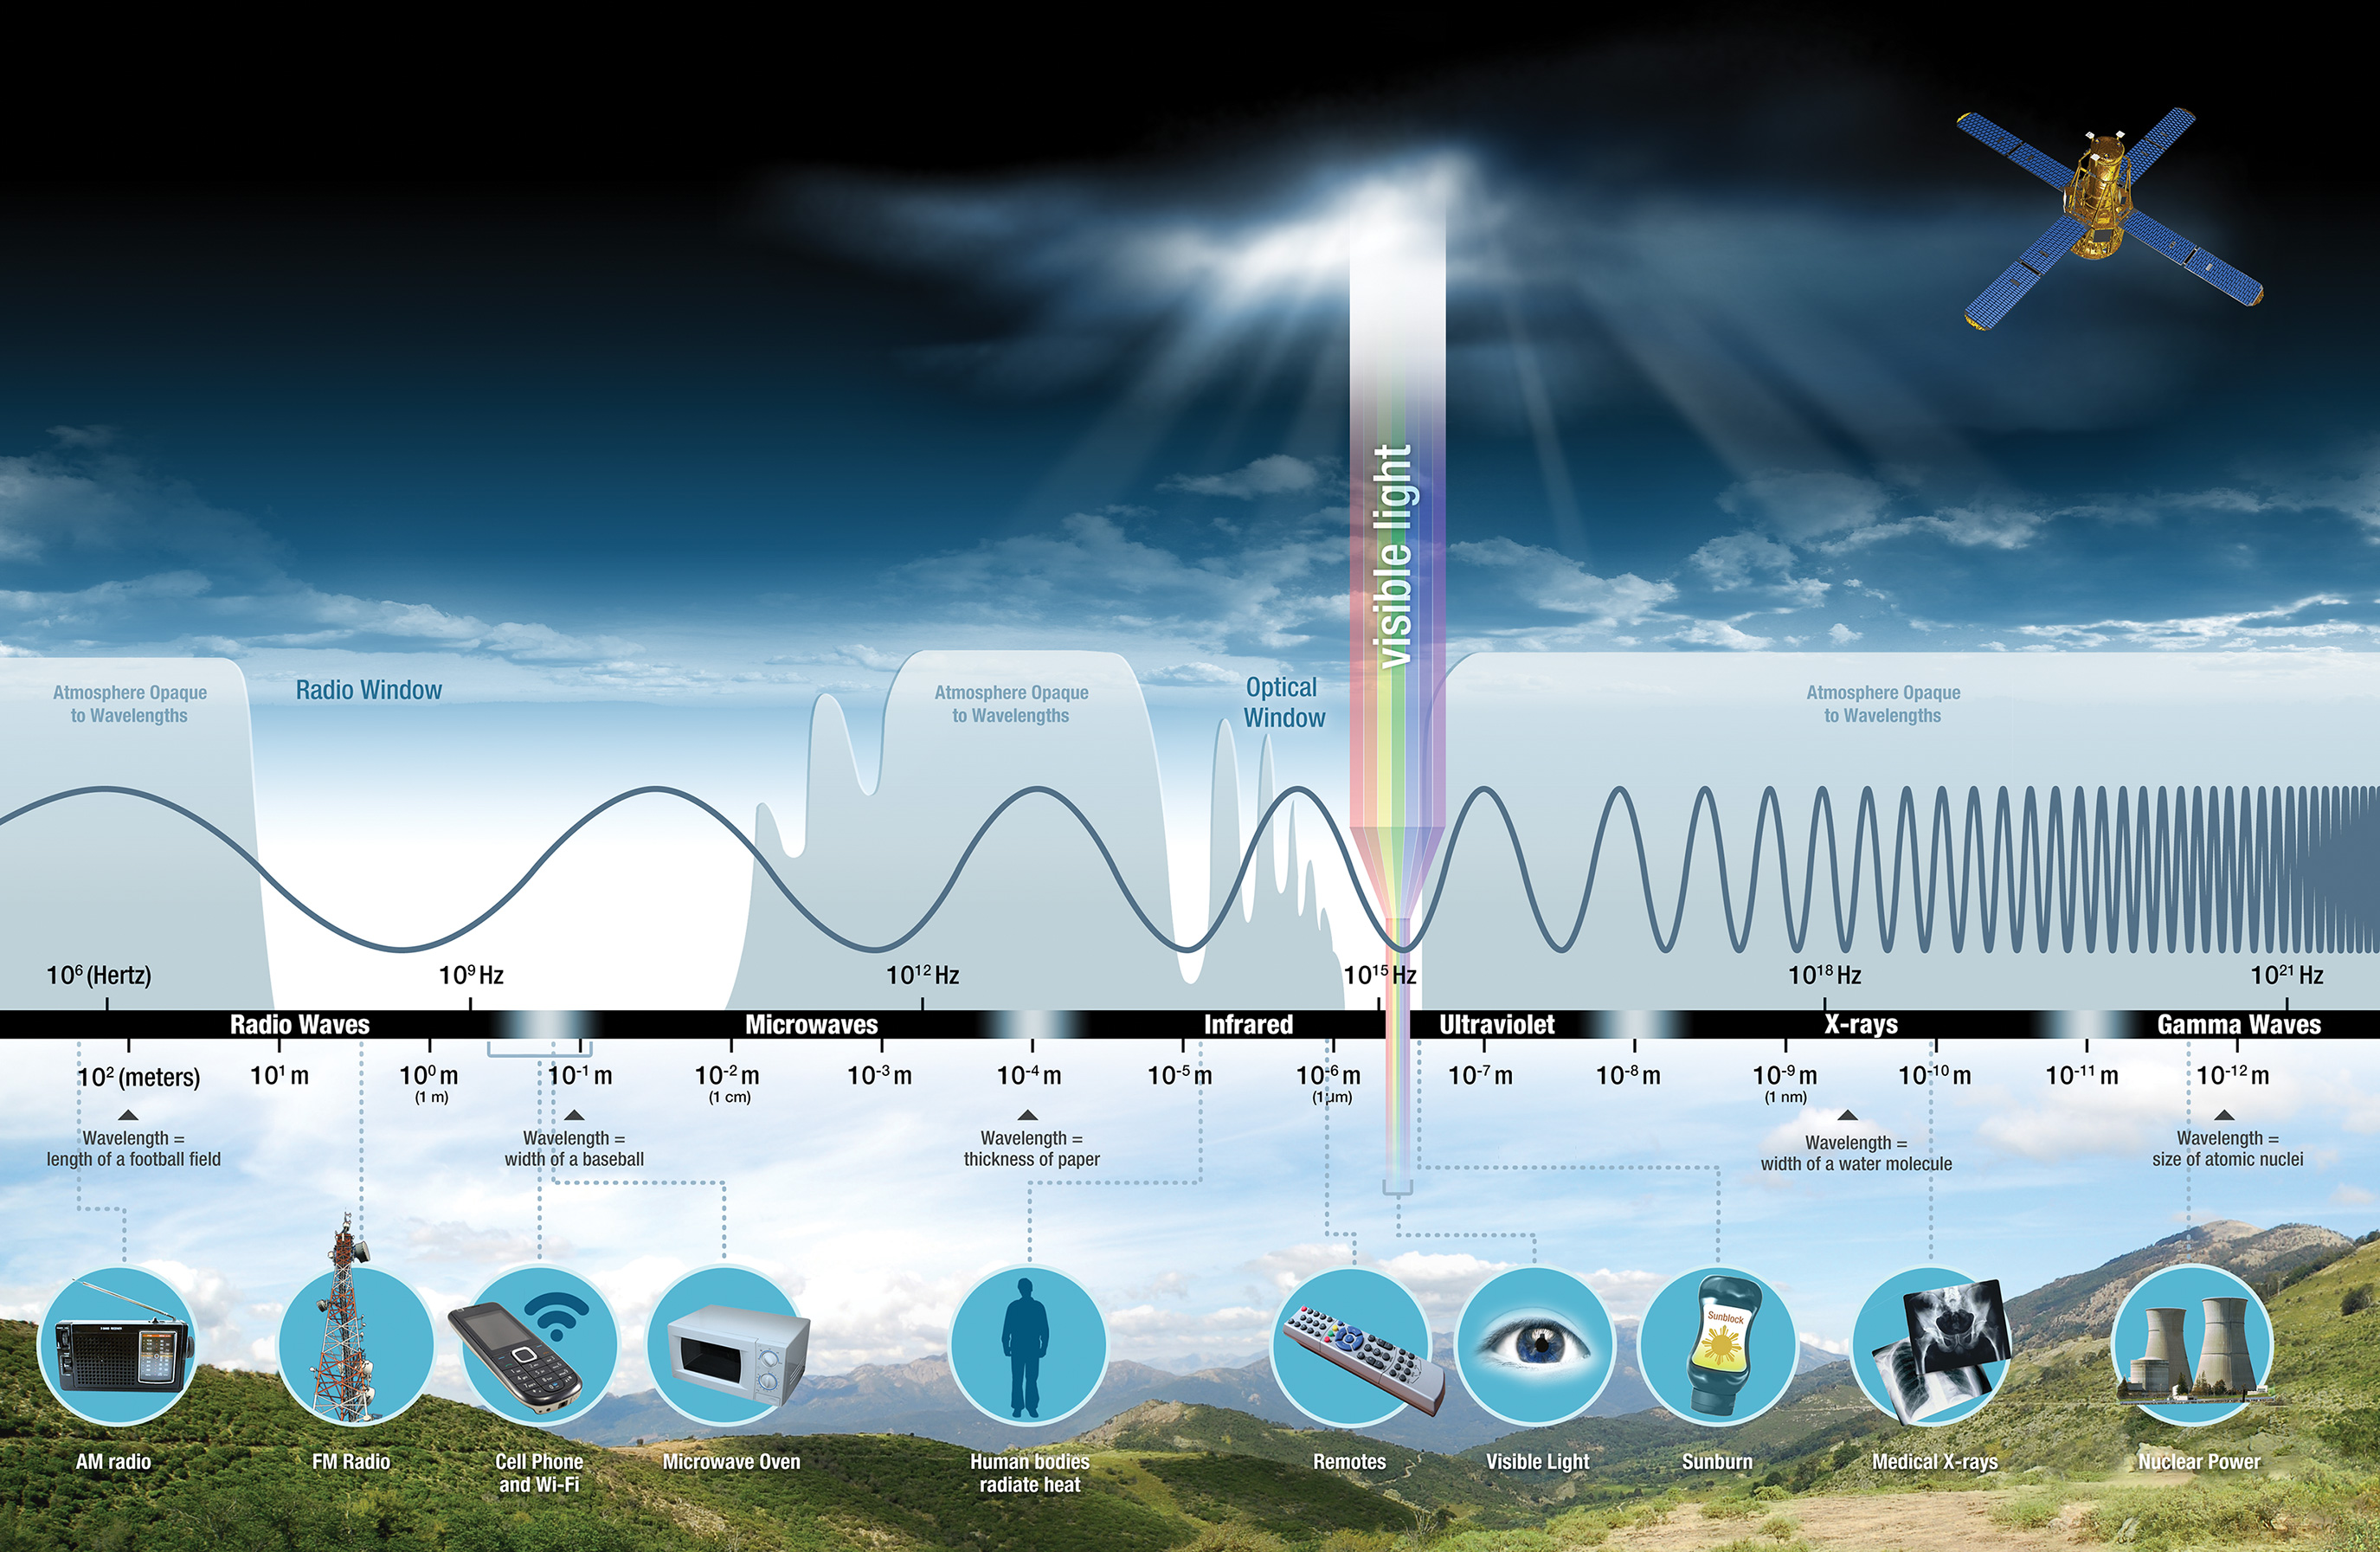 Infographic showing the electromagnetic spectrum and applications for various wavelengths.